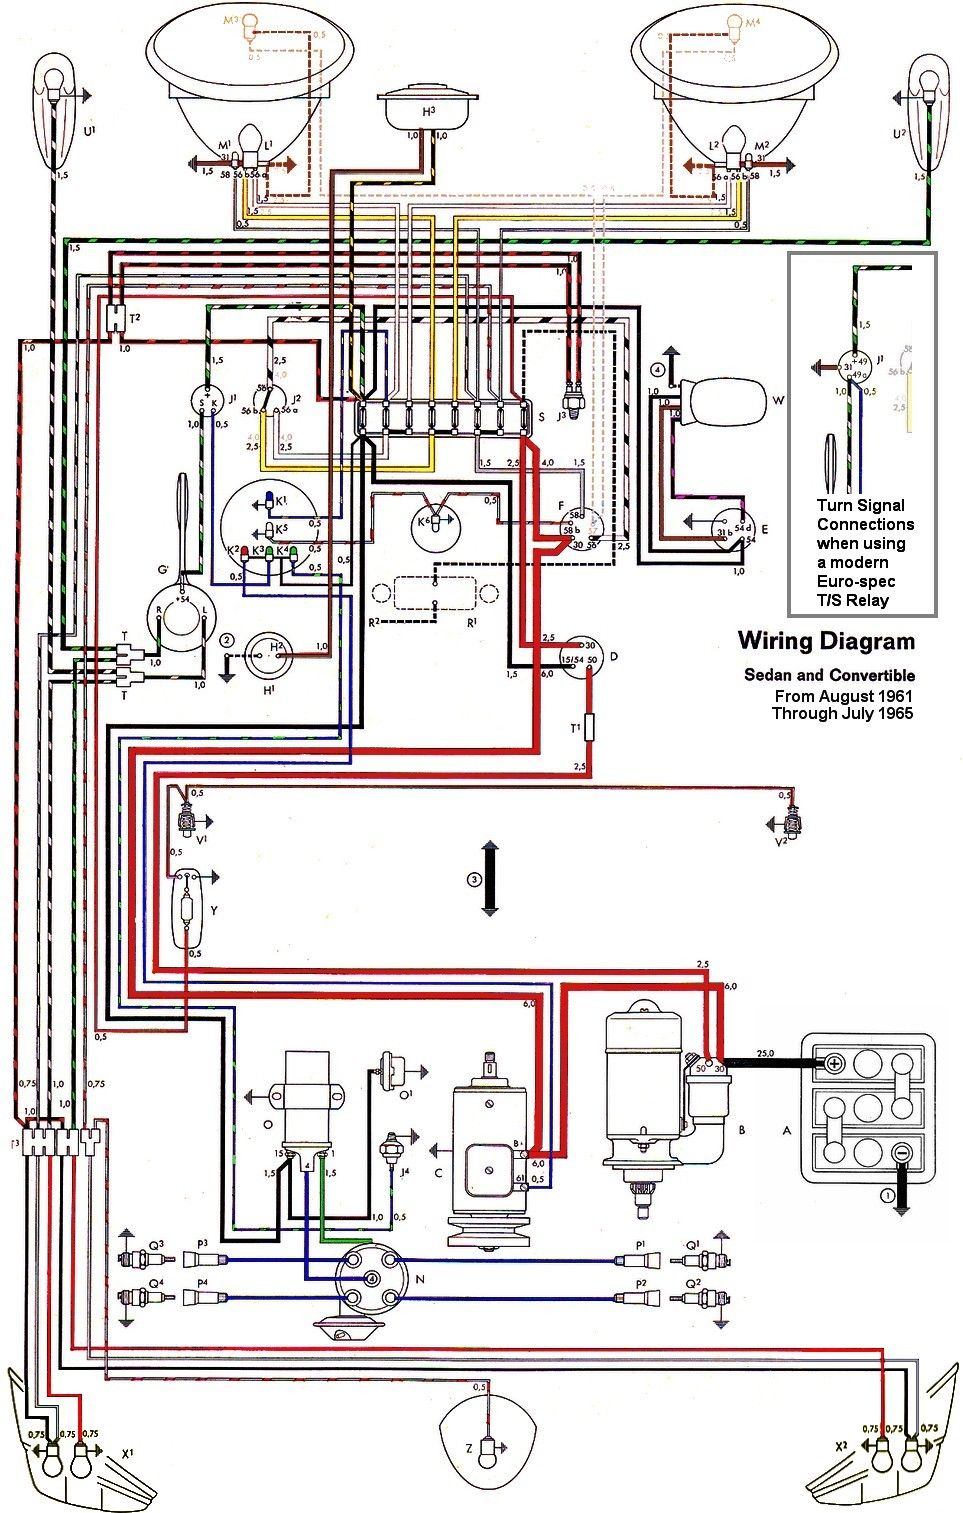 small resolution of wiring diagram vw beetle sedan and convertible 1961 1965 vw wiring diagram vw beetle 1971 wiring